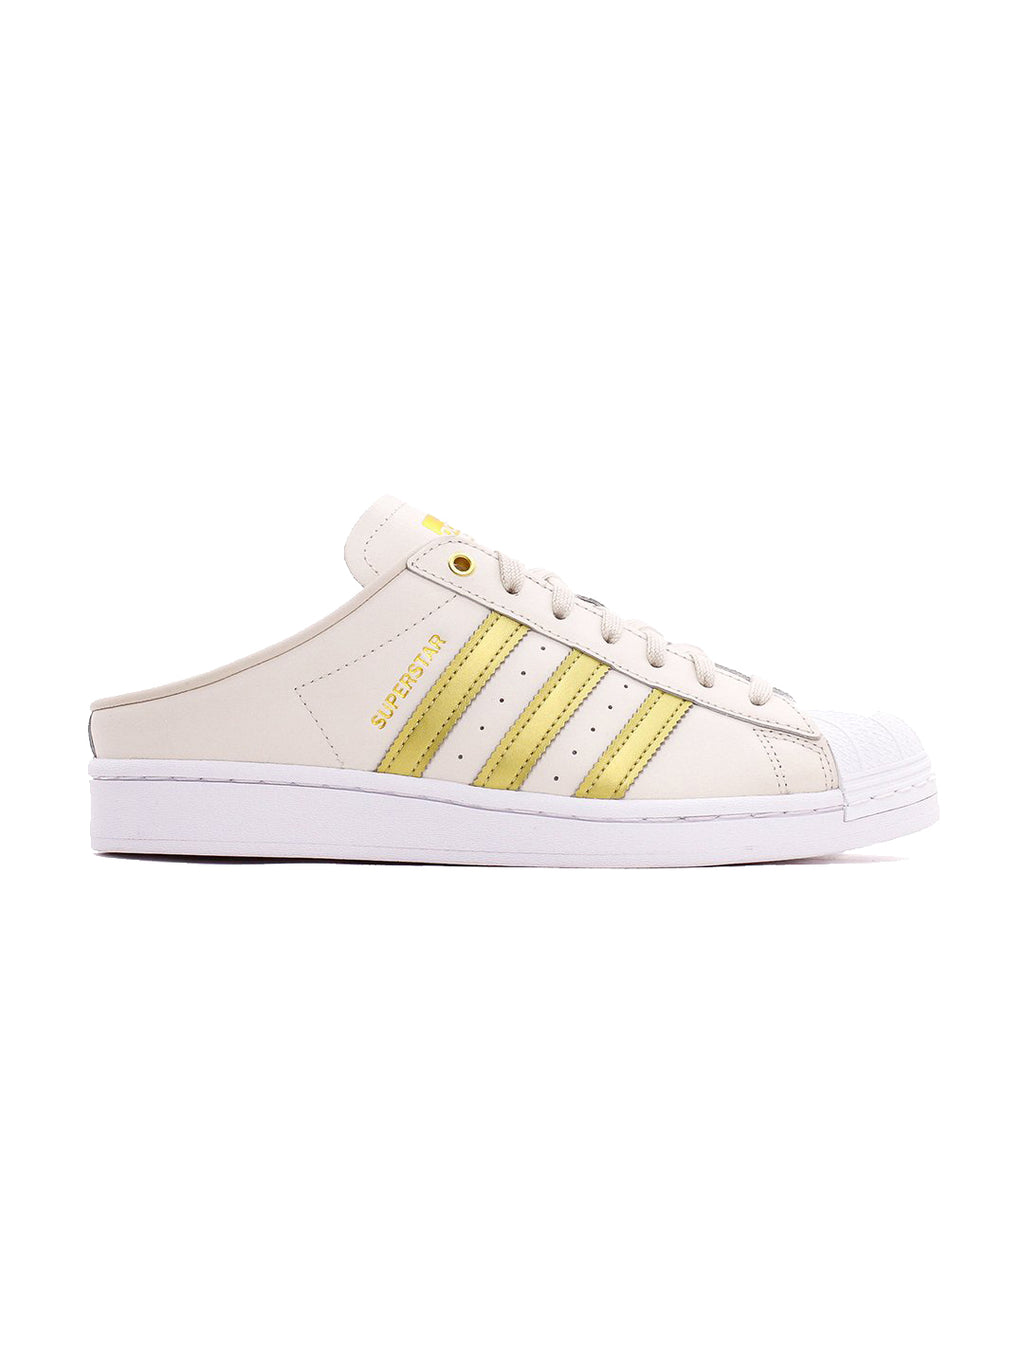 Mule White Gold Superstar Sneakers